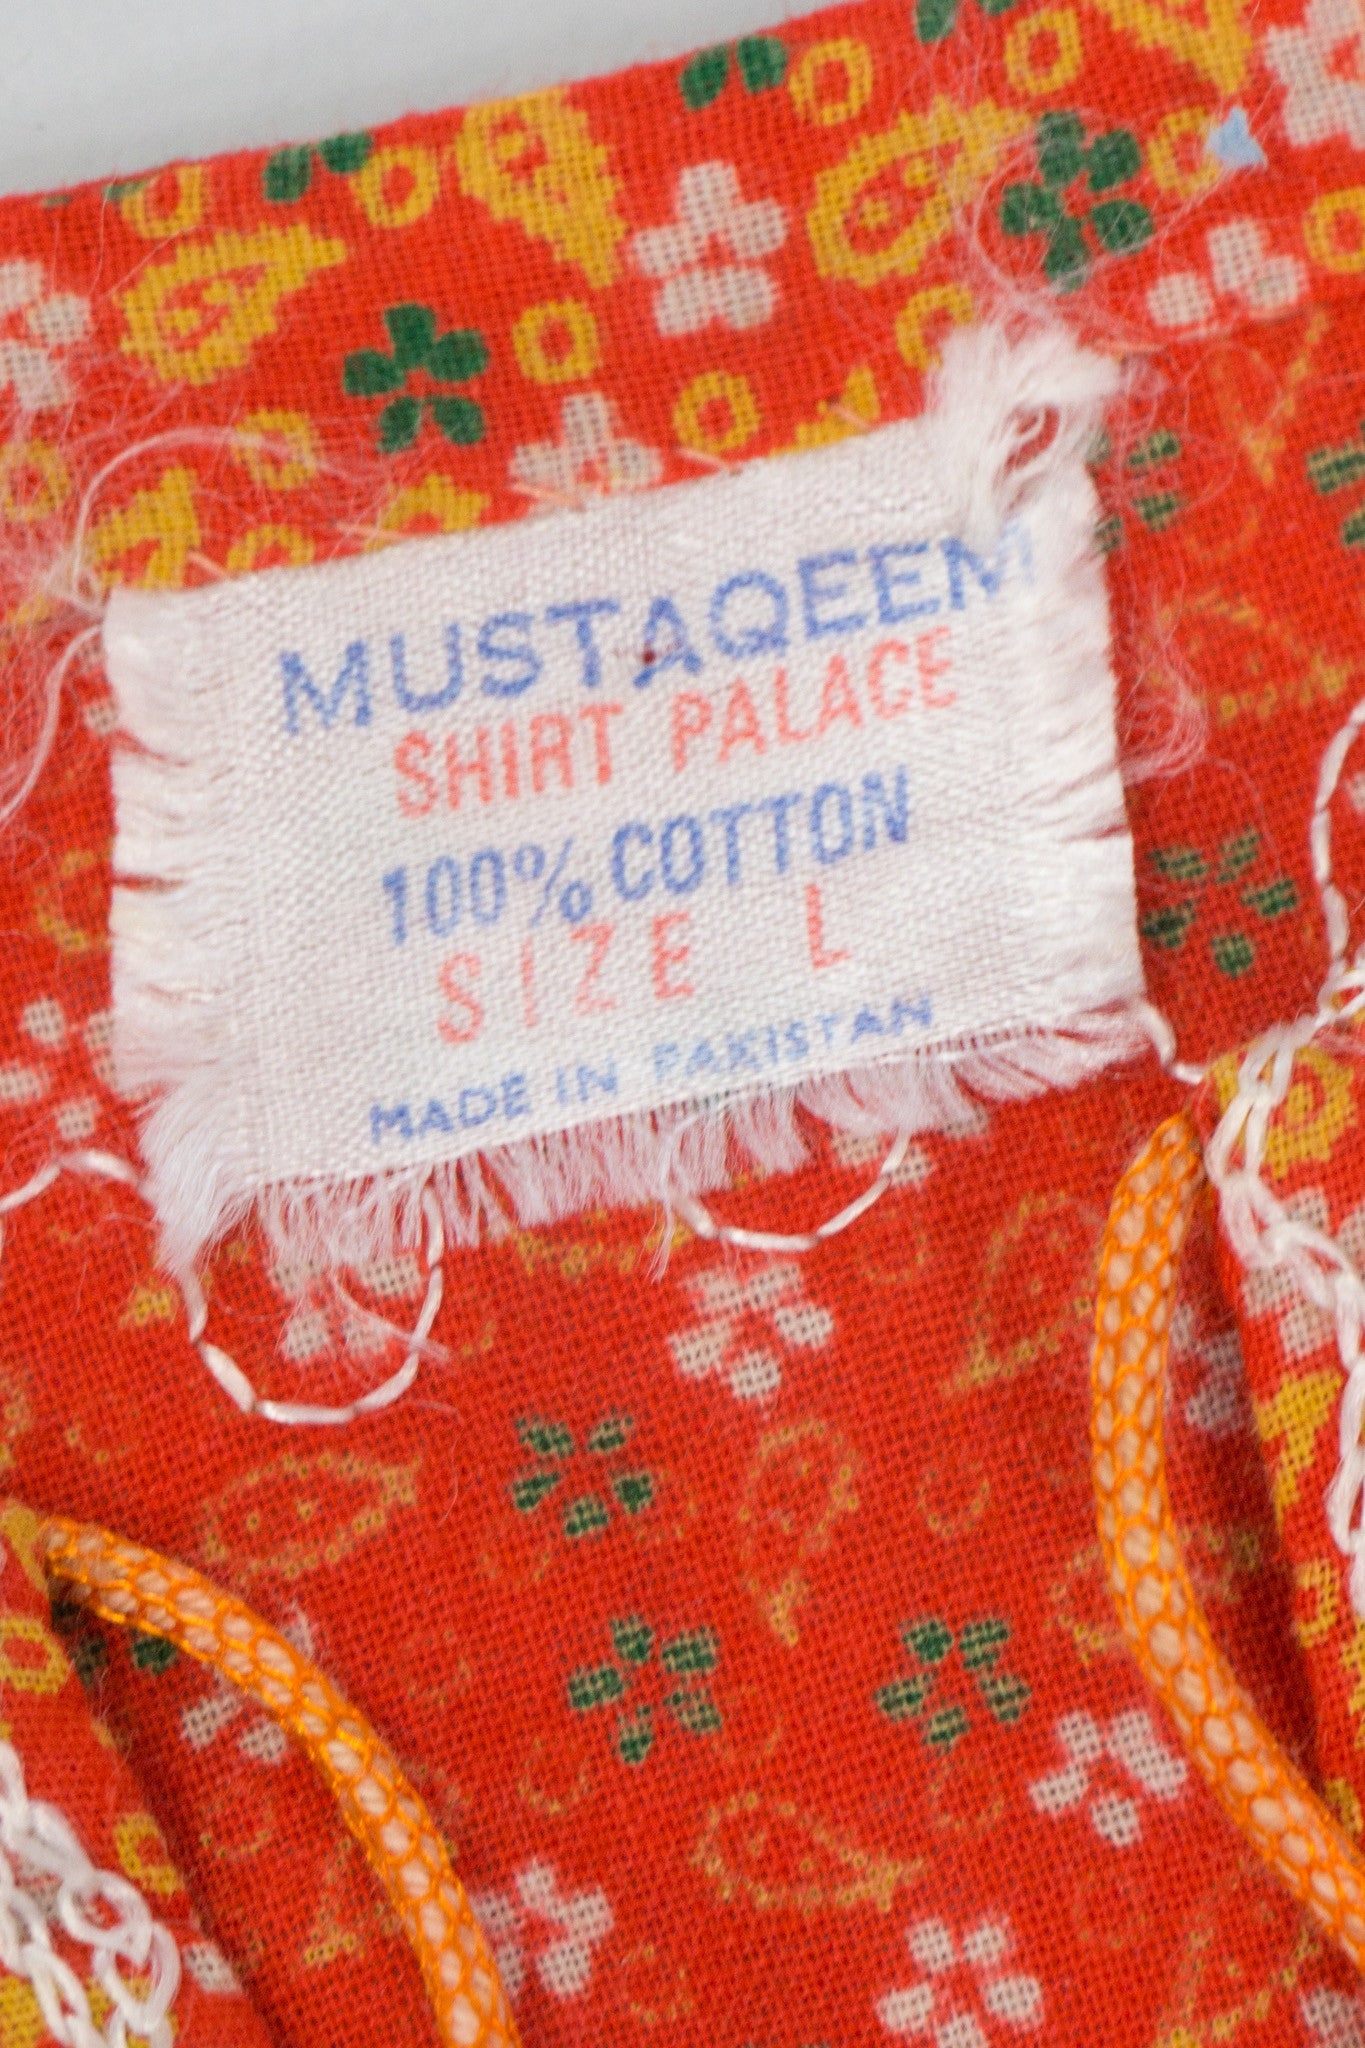 Mustaqeem Label